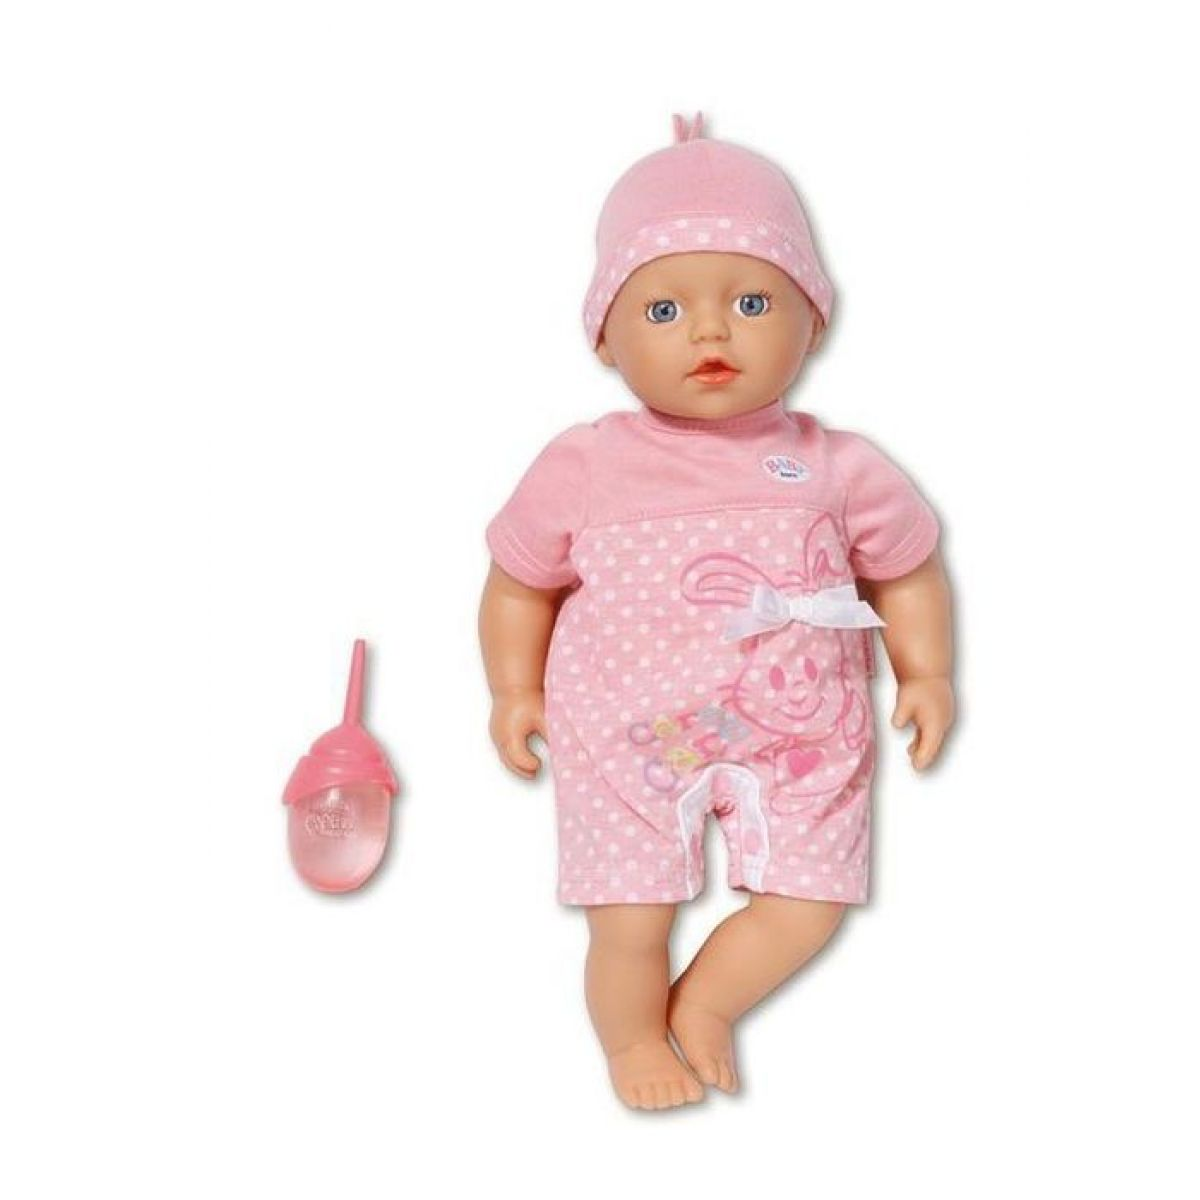 BABY born 816868 - my little BABY born® 32 cm